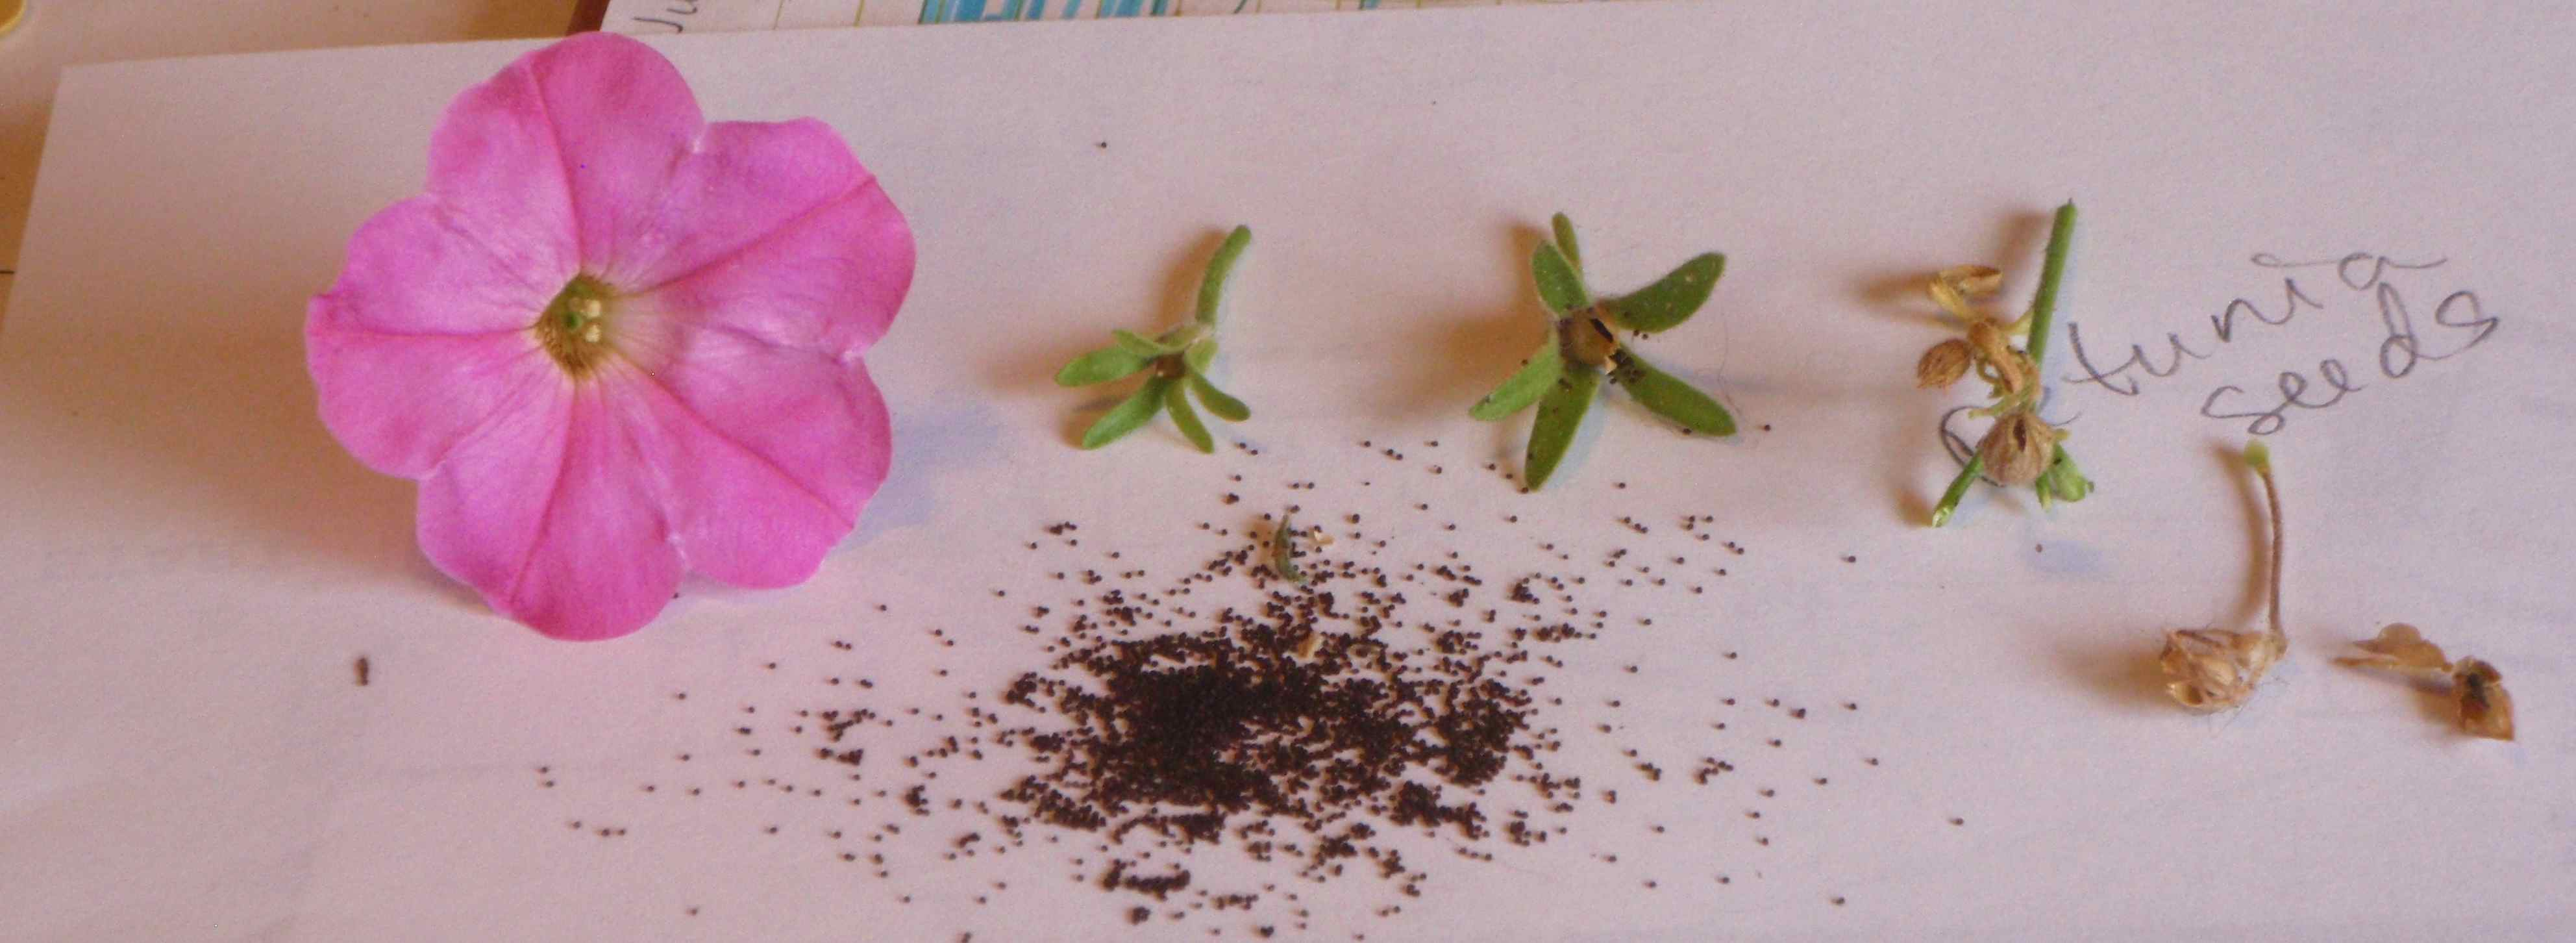 Left To Right Freshly Picked Petunia Still Small Unripe Seed Pod Dry